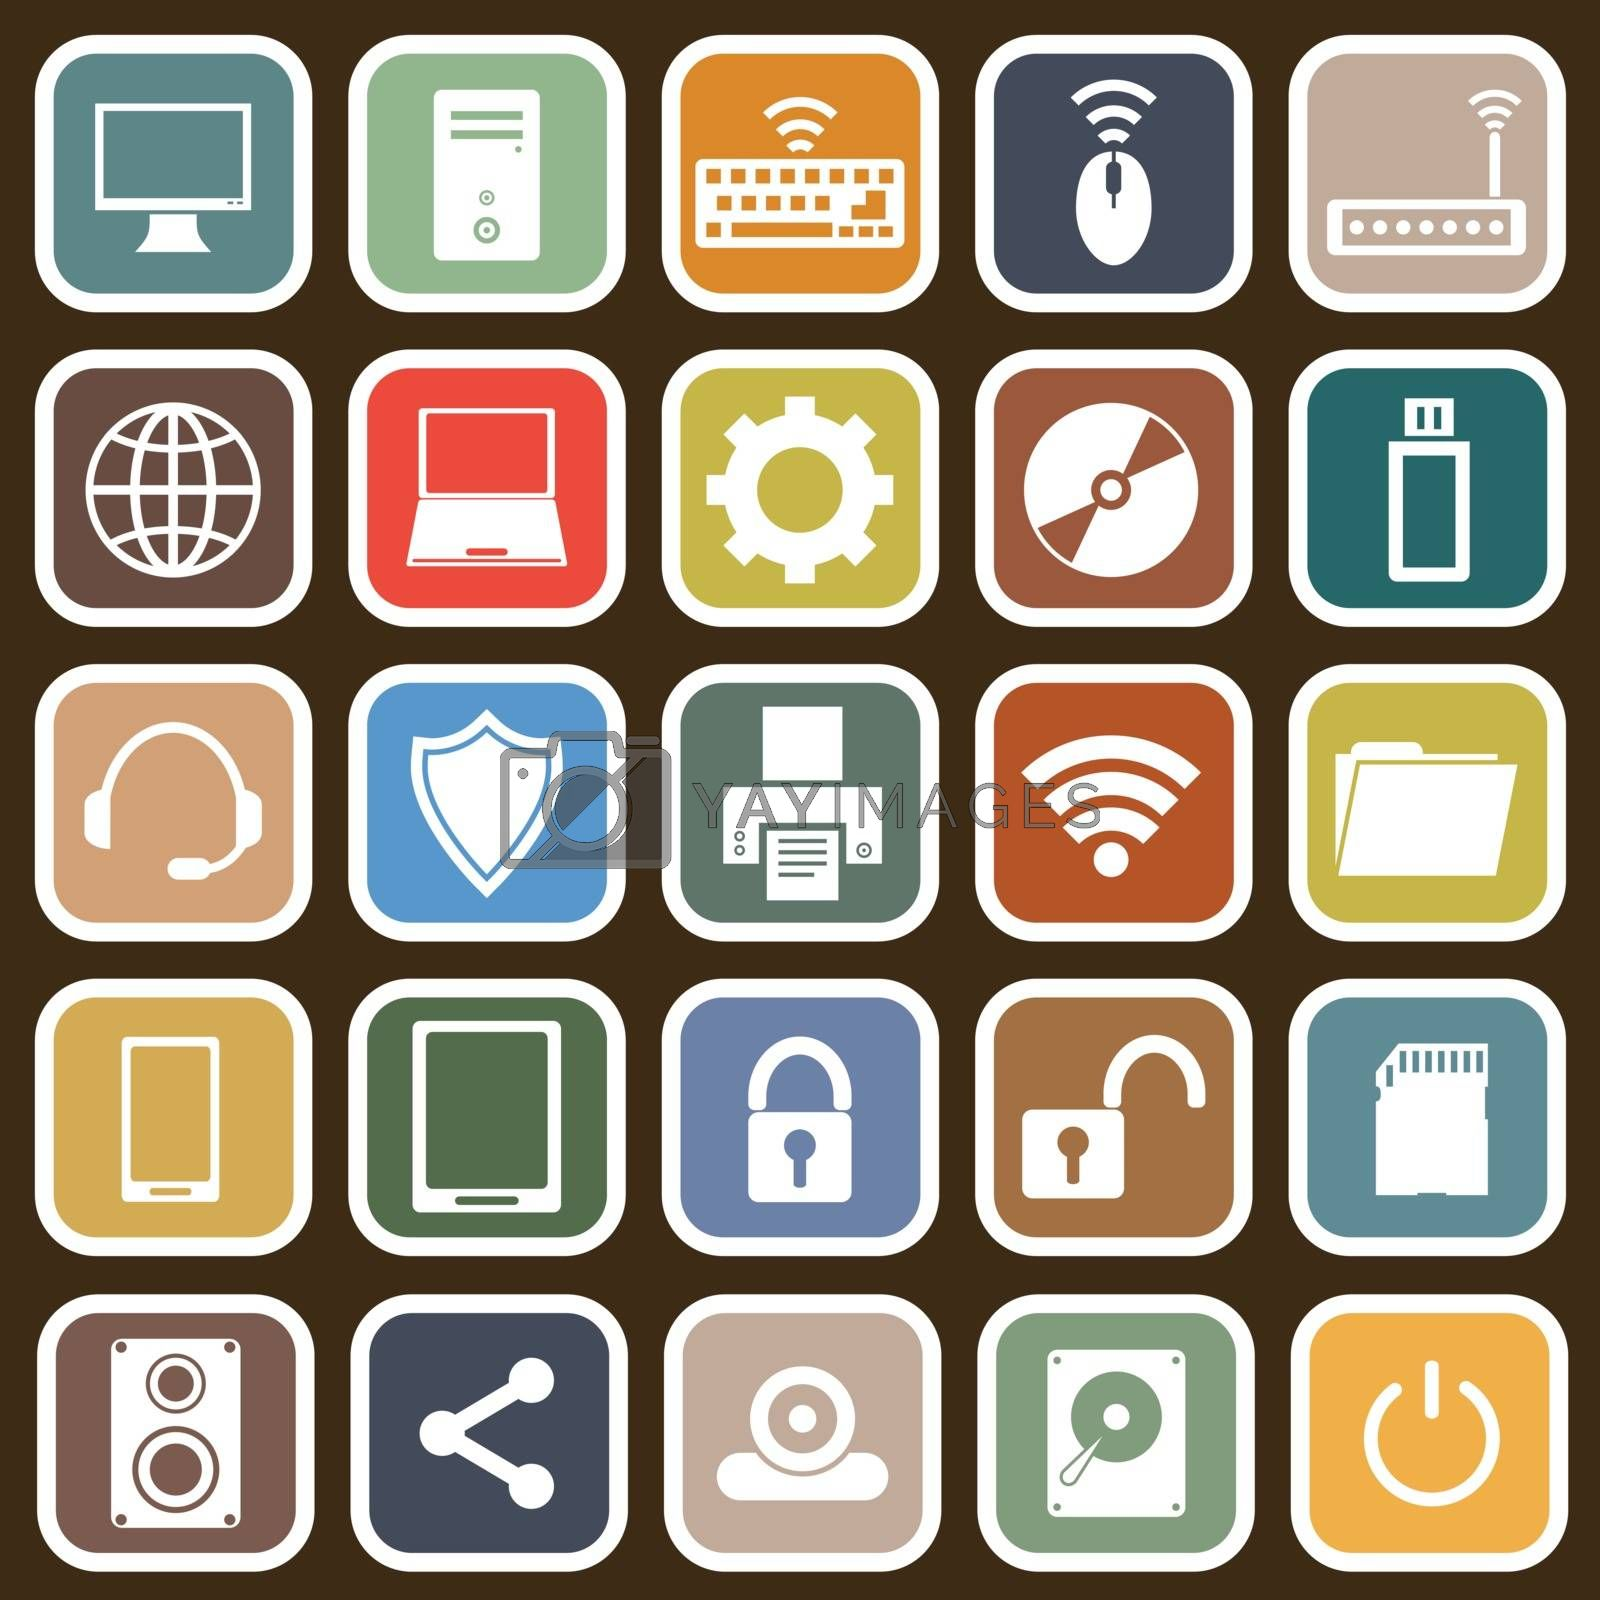 Computer flat icons on brown background, stock vector